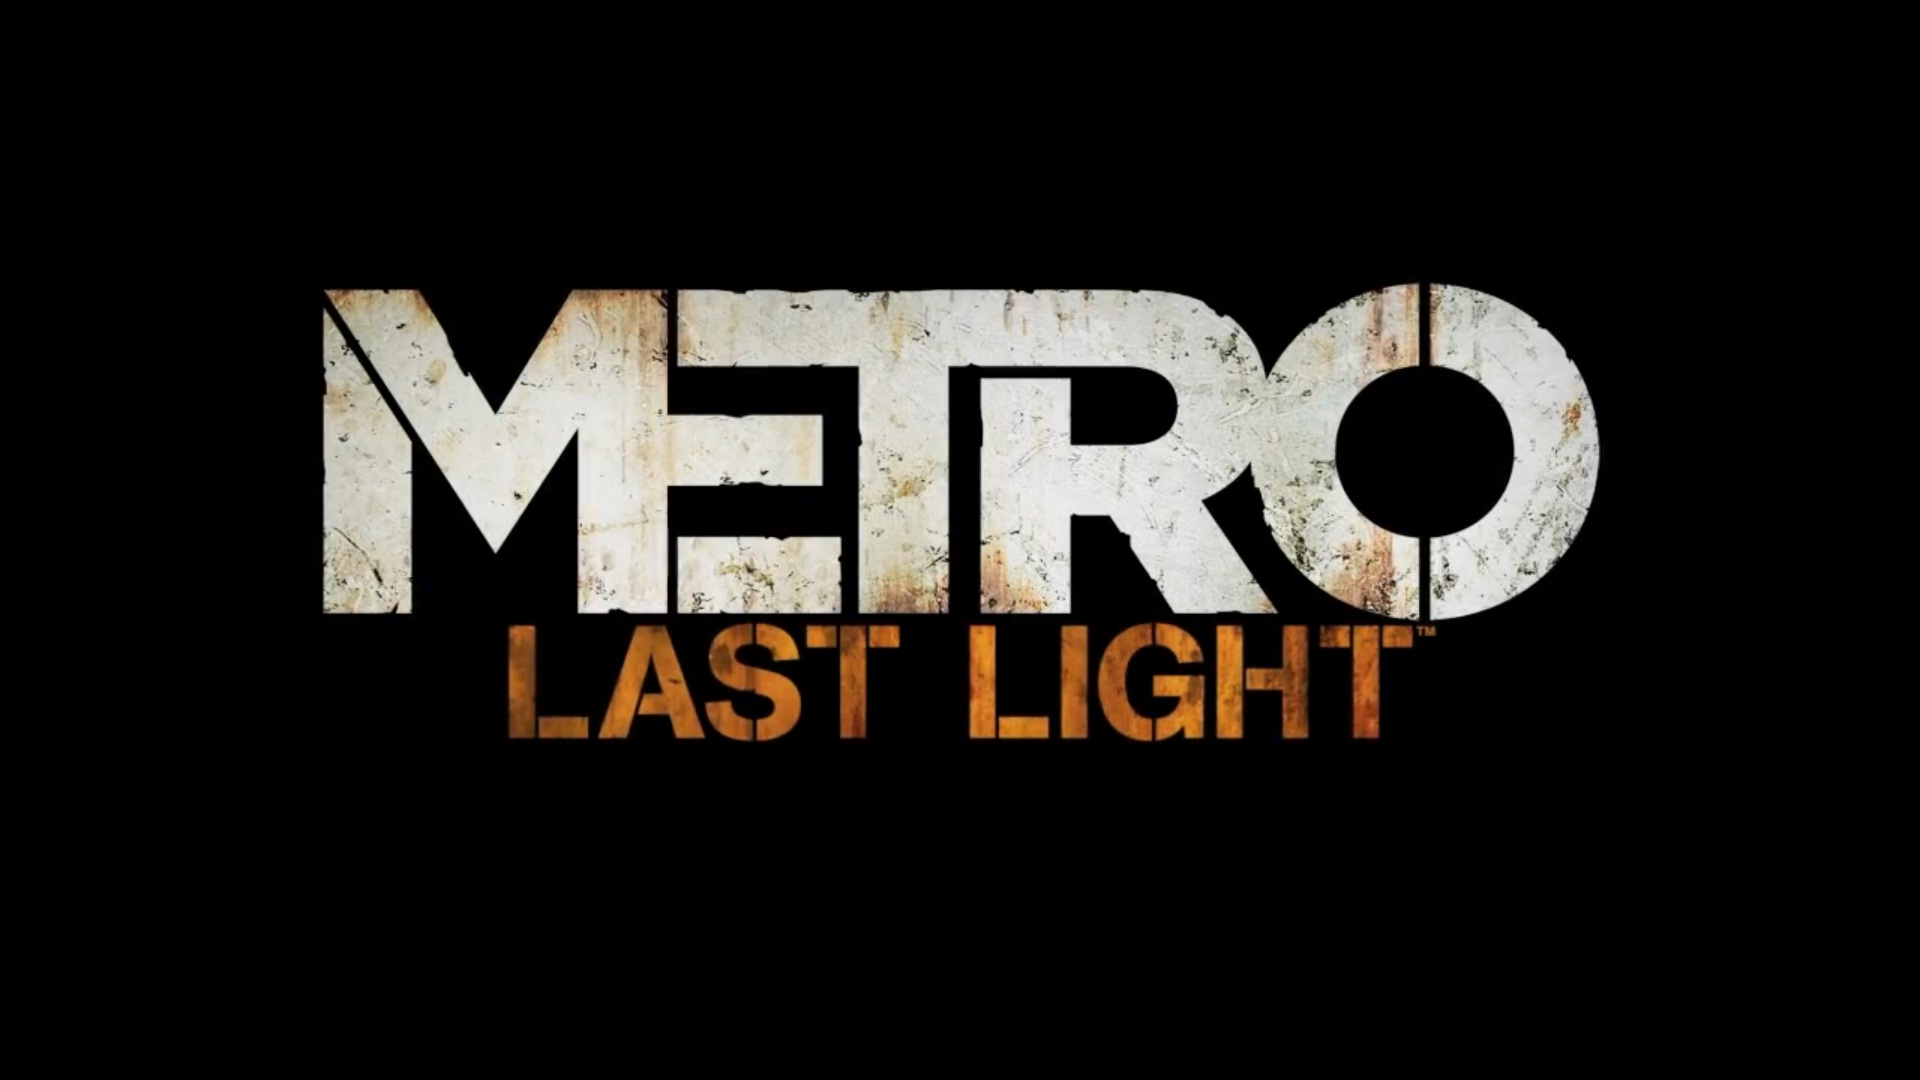 Metro Last Light (Steam Key / Region Free)